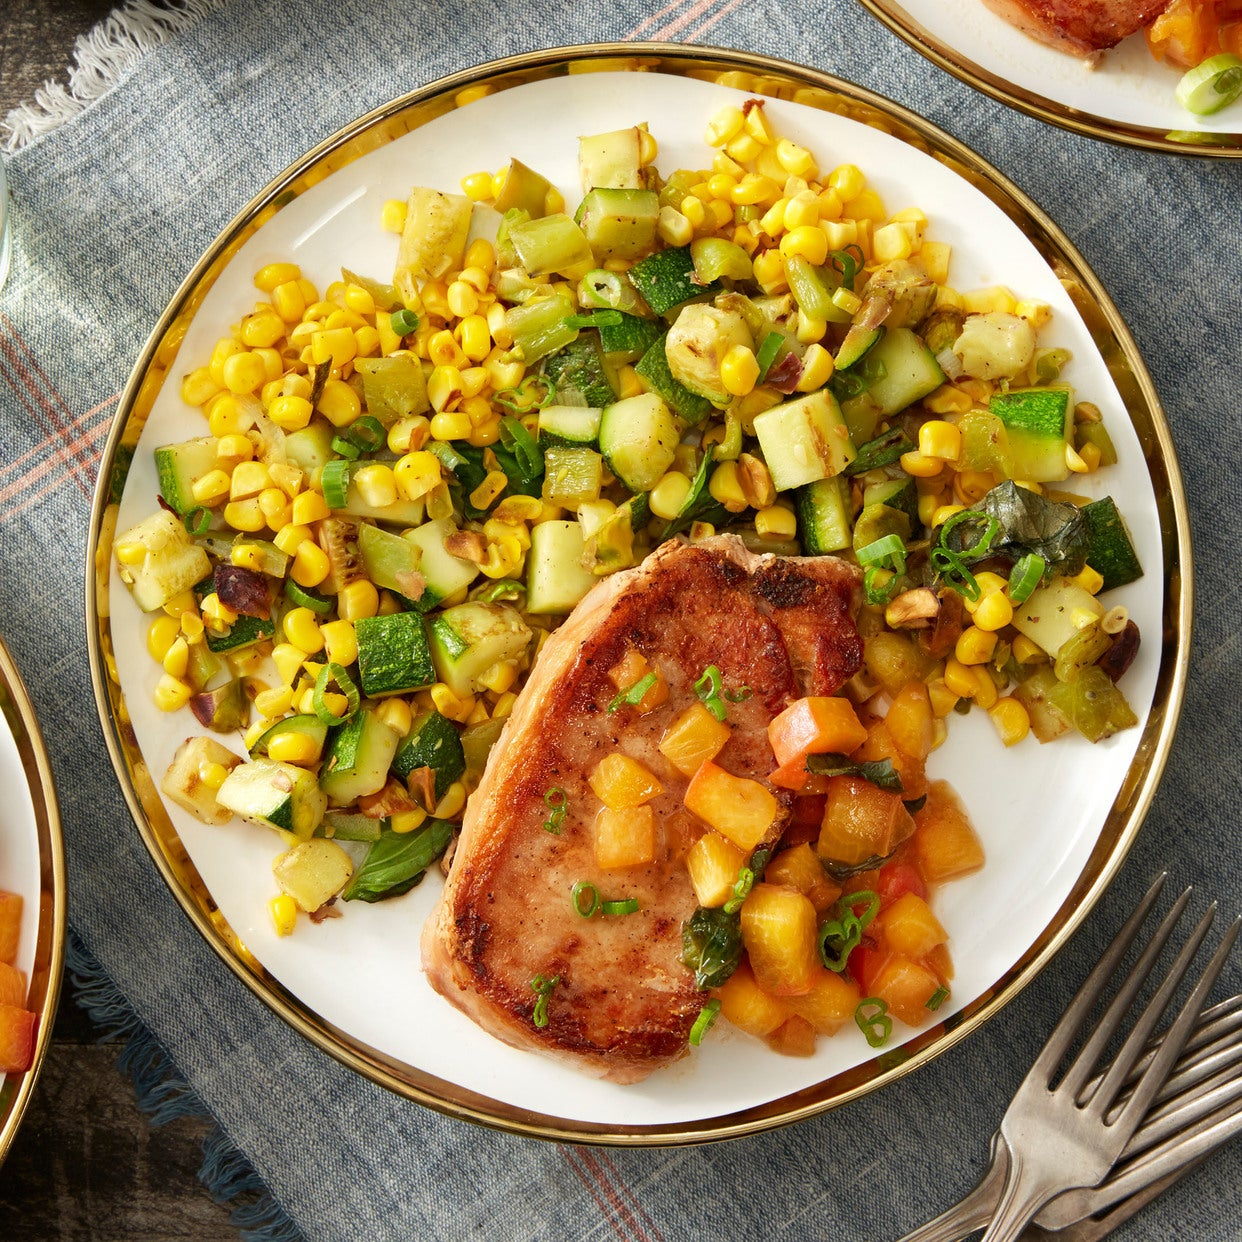 Pork Chops & Peach Sauce with Corn & Summer Squash Succotash